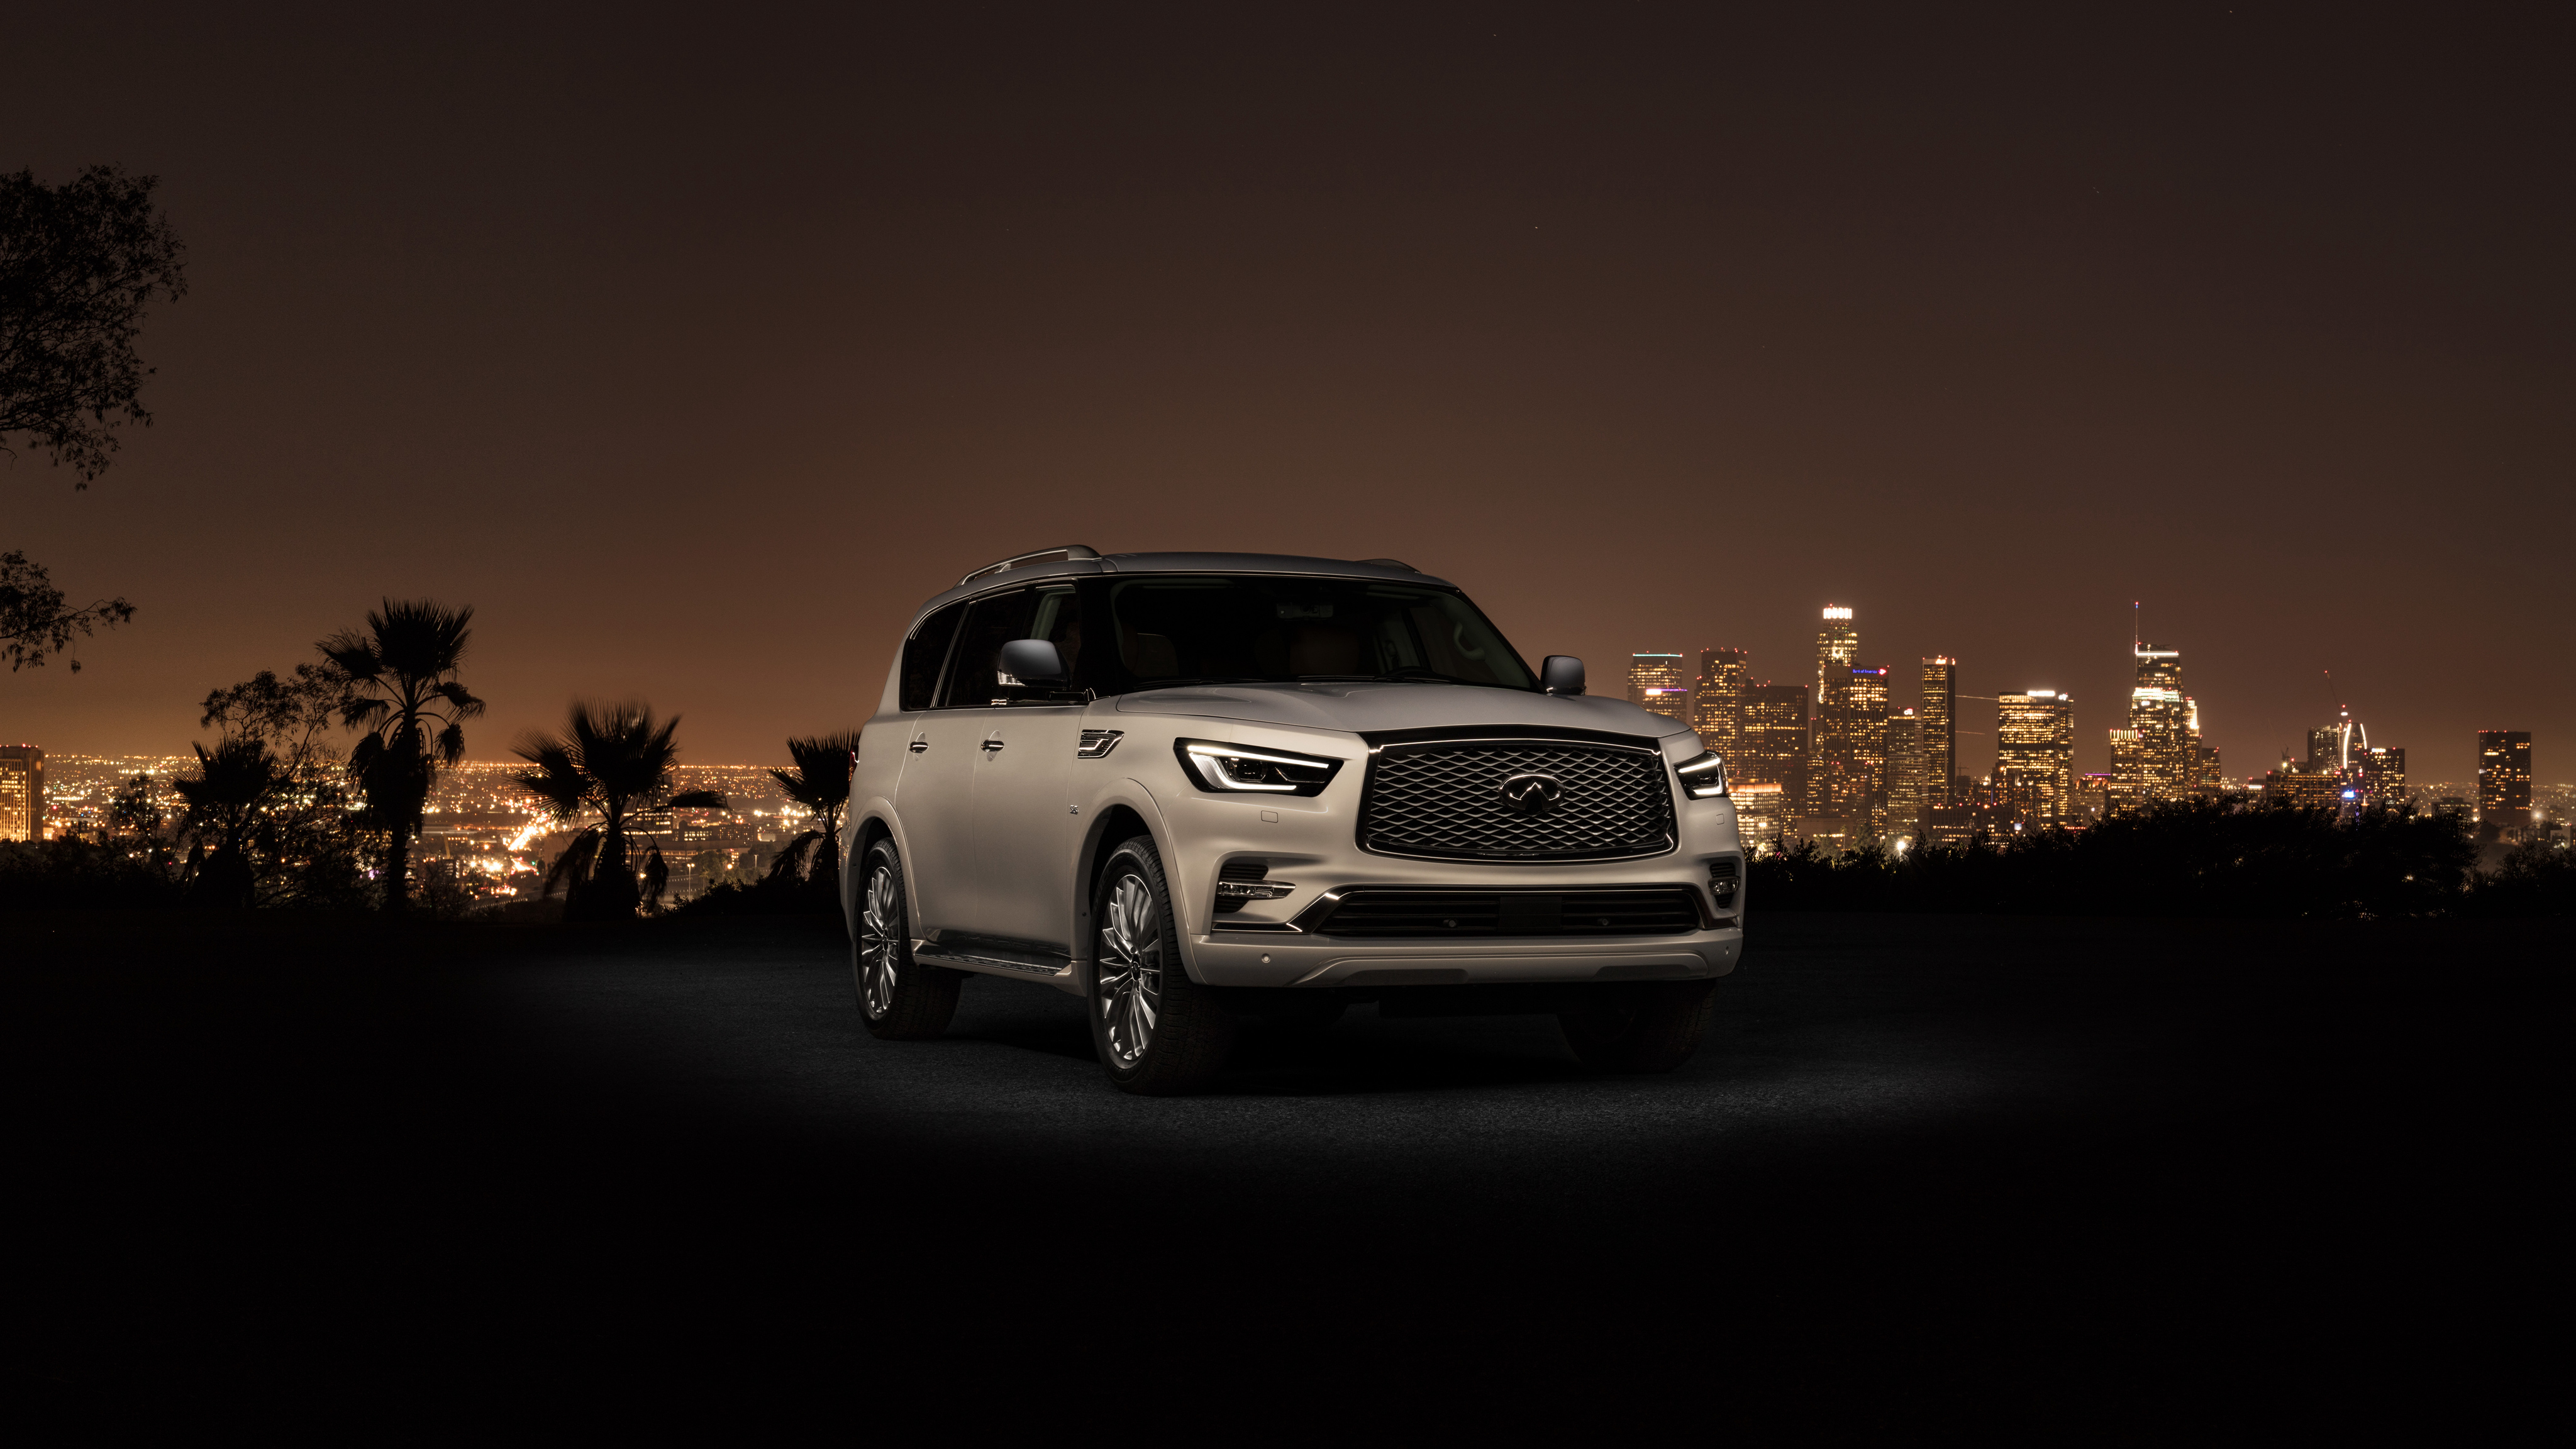 4096x2304 - Infiniti QX80 Wallpapers 1